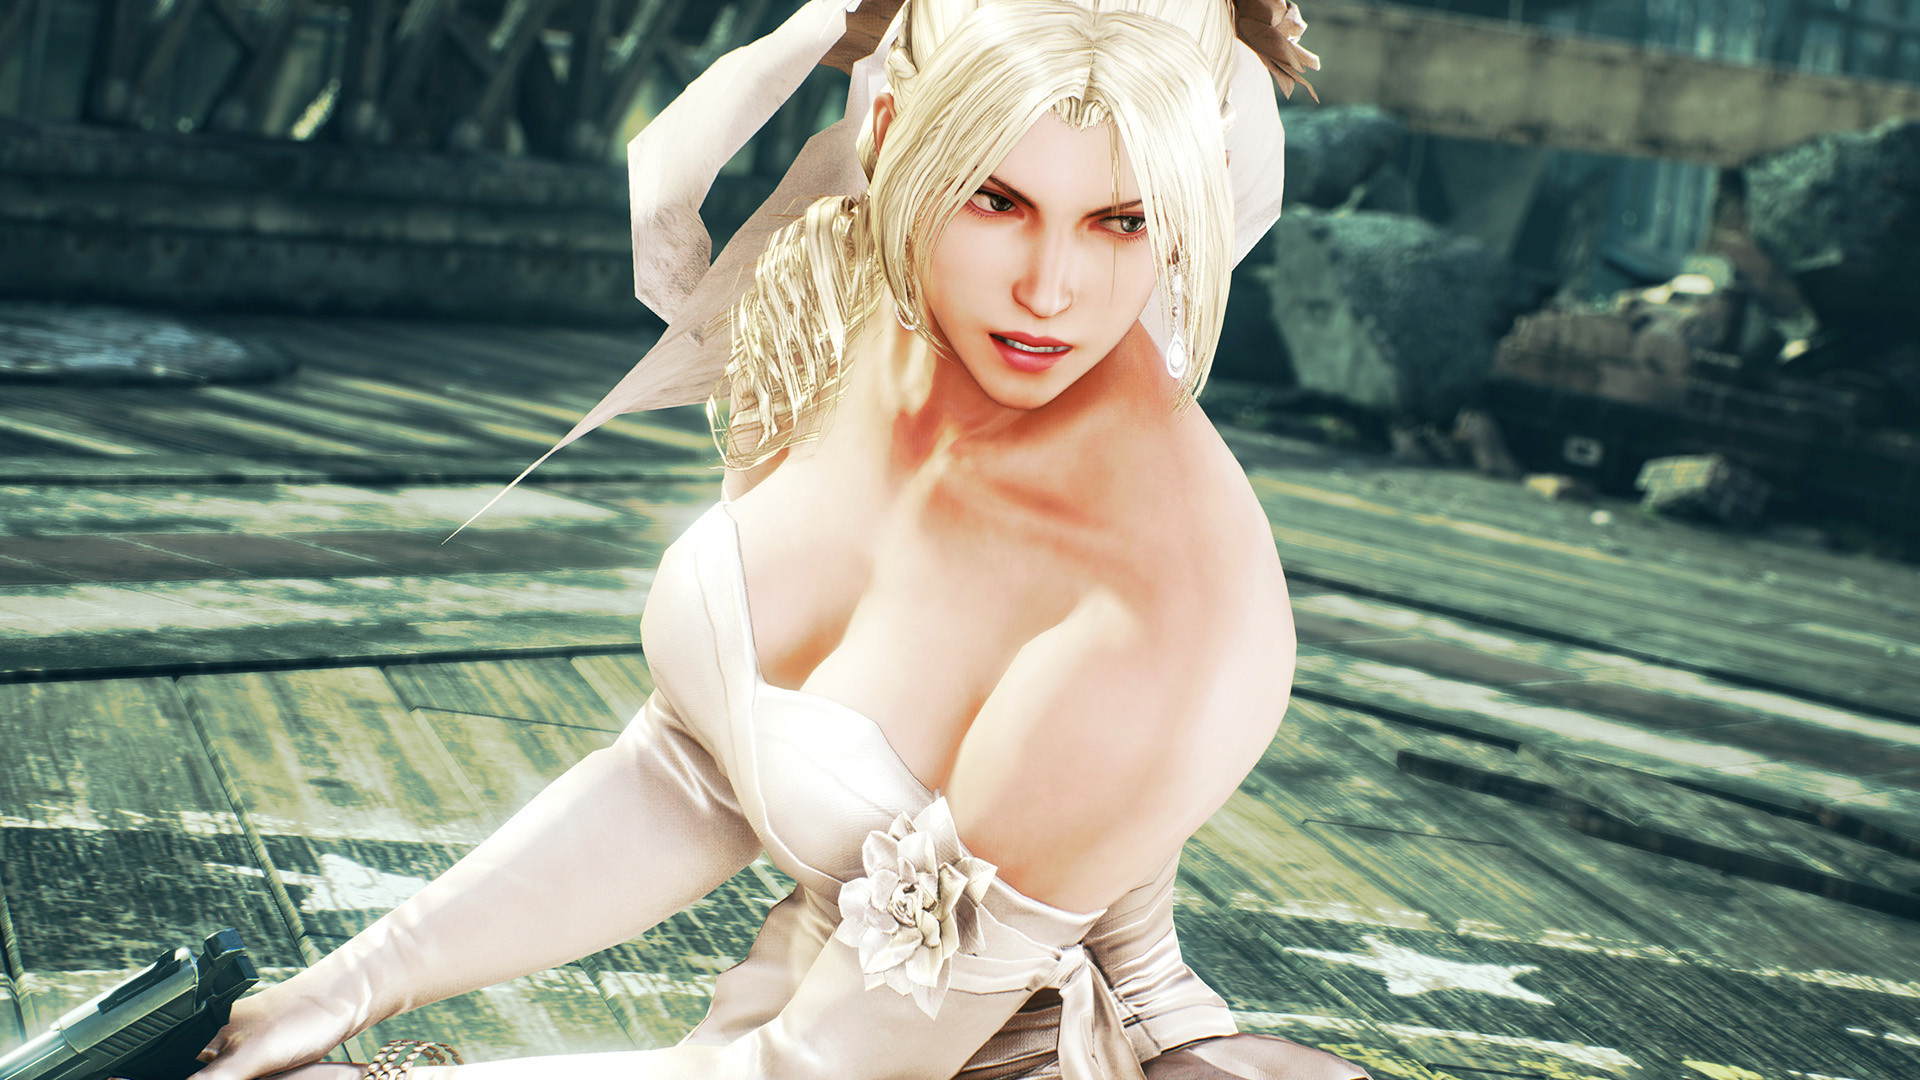 download tekken 7 digital deluxe edition + all dlcs + multiplayer repack - fitgirl singlelink iso rar part google drive direct link uptobox ftp link magnet torrent high seed thepiratebay kickass alternative